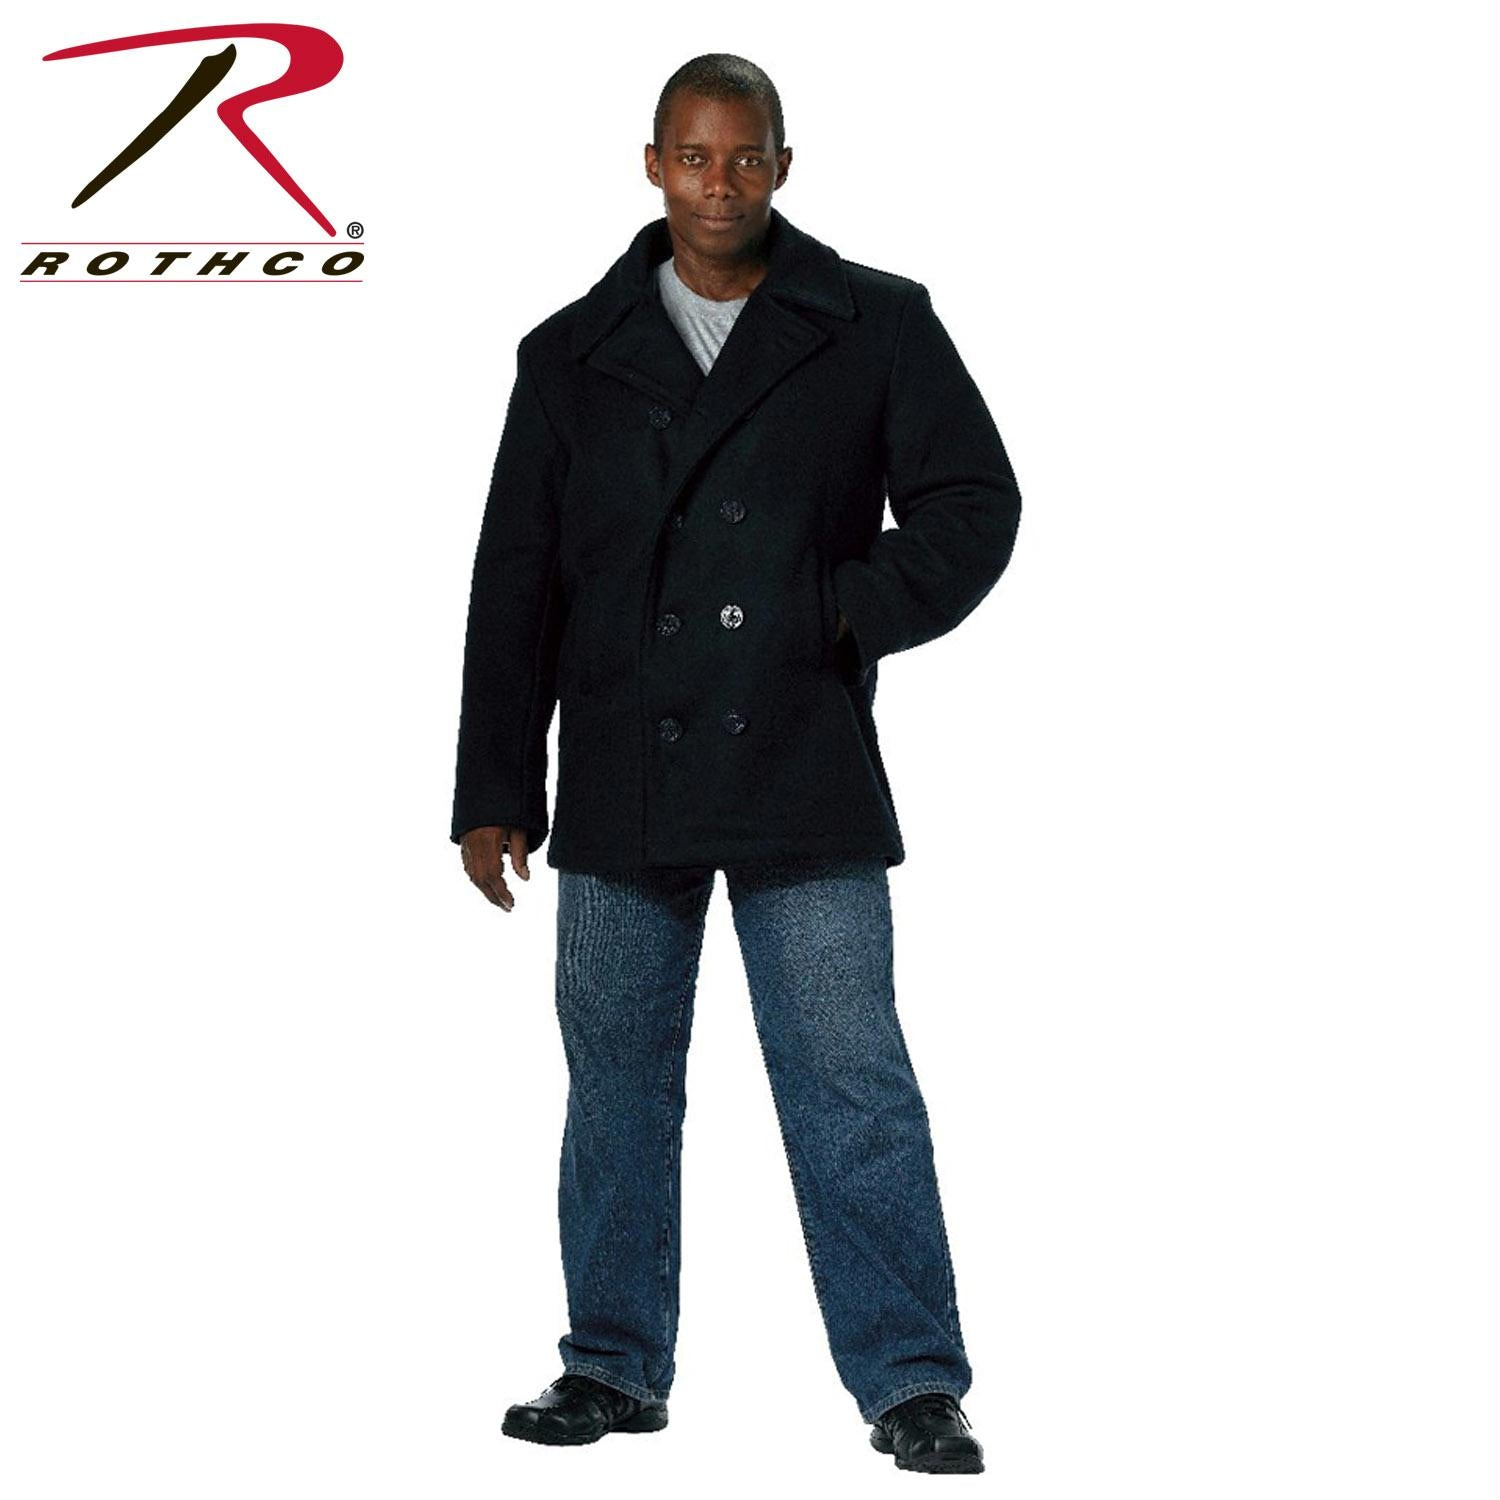 Rothco US Navy Type Pea Coat - Navy Blue / 3XL